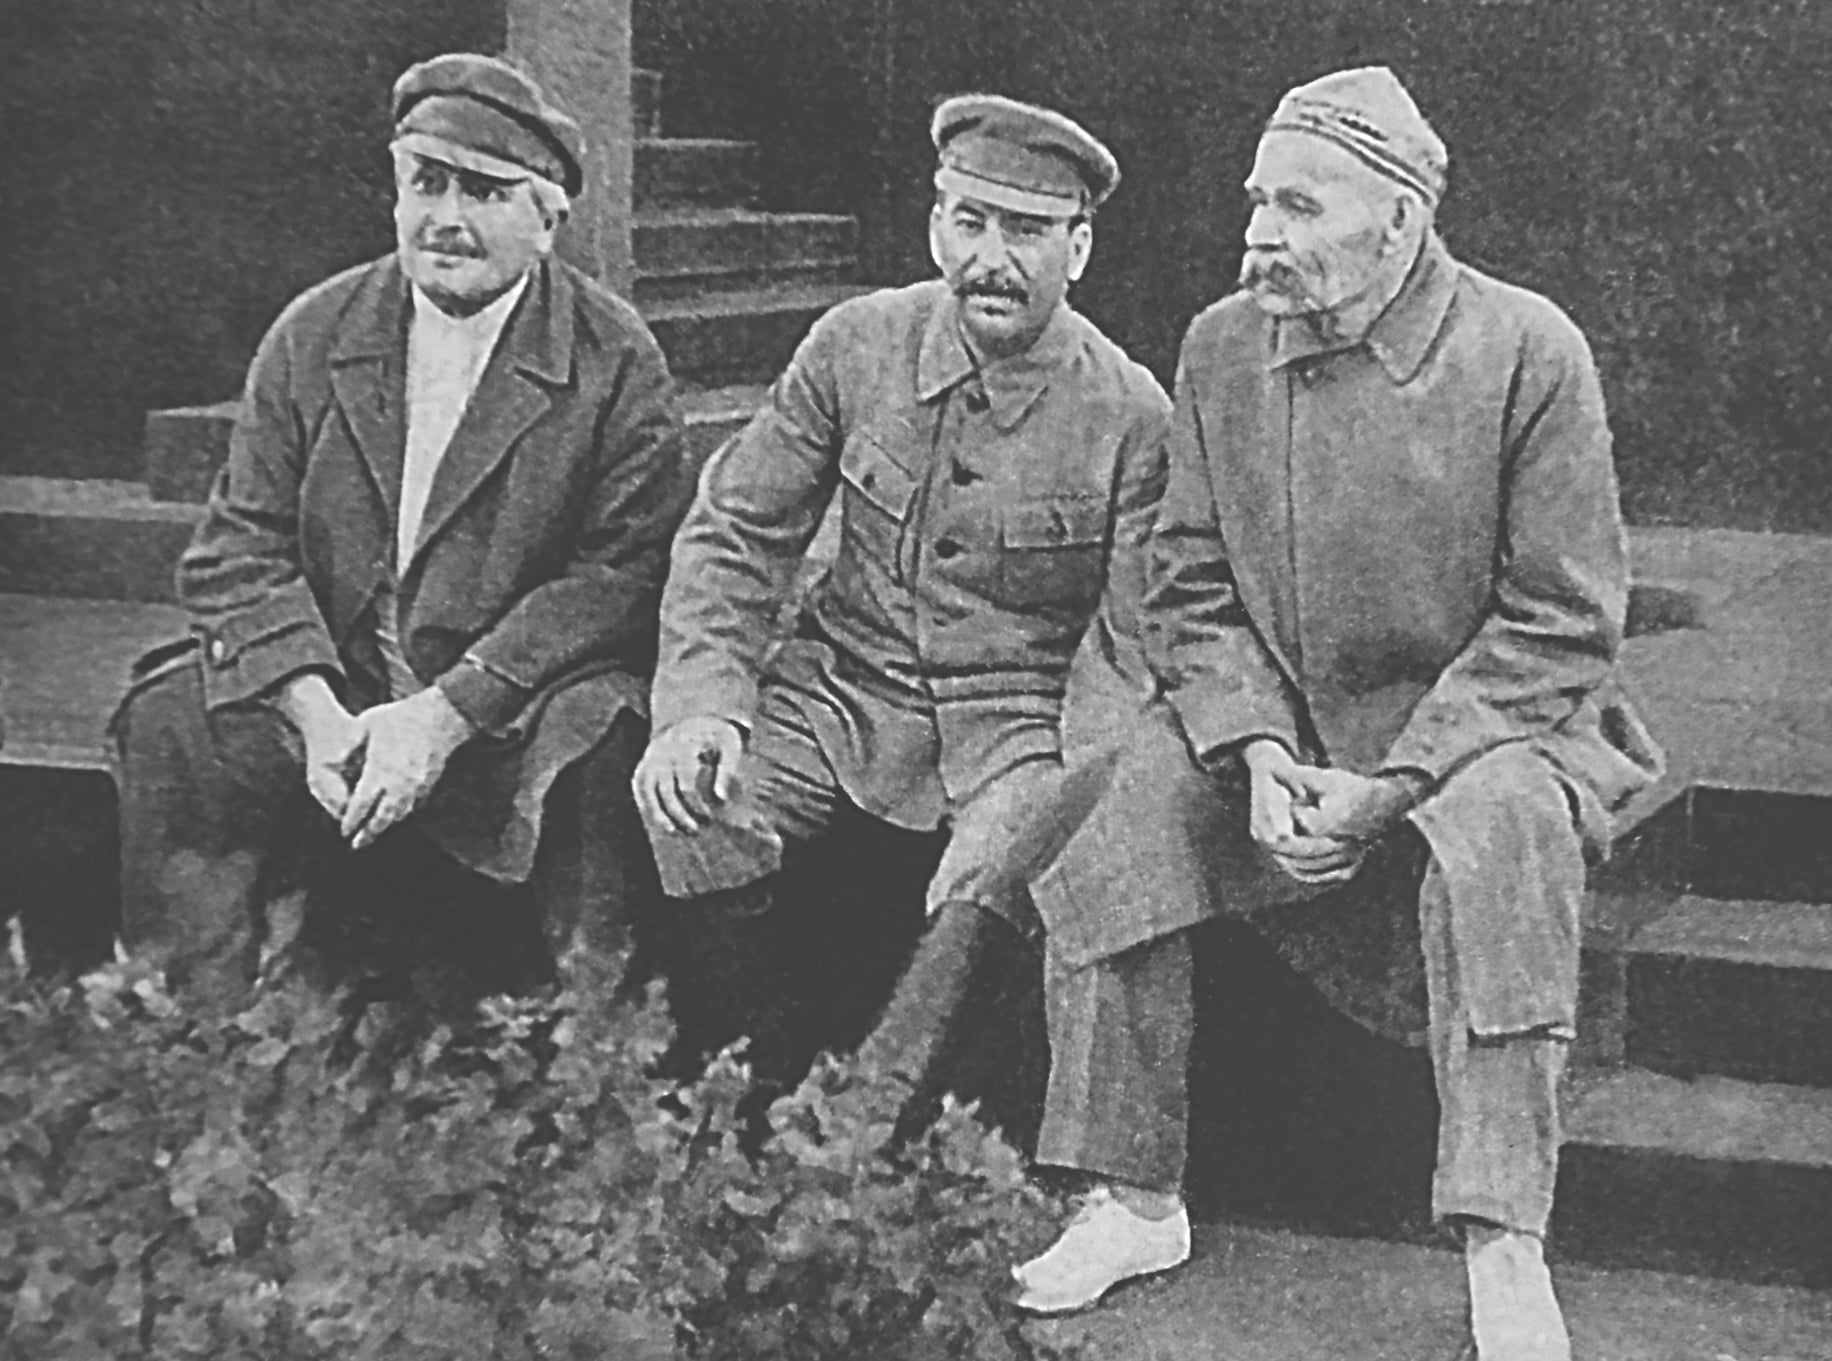 Avel Enukidze (1877—1937), Joseph Stalin and Maxim Gorky celebrate 10th anniversary of Sportintern. Red Square, Moscow USSR. The image taken Jul 21 1931. 10th anniversary of Sportintern celebration Red Square Moscow USSR. Photo: Unknown author. Public Domain.